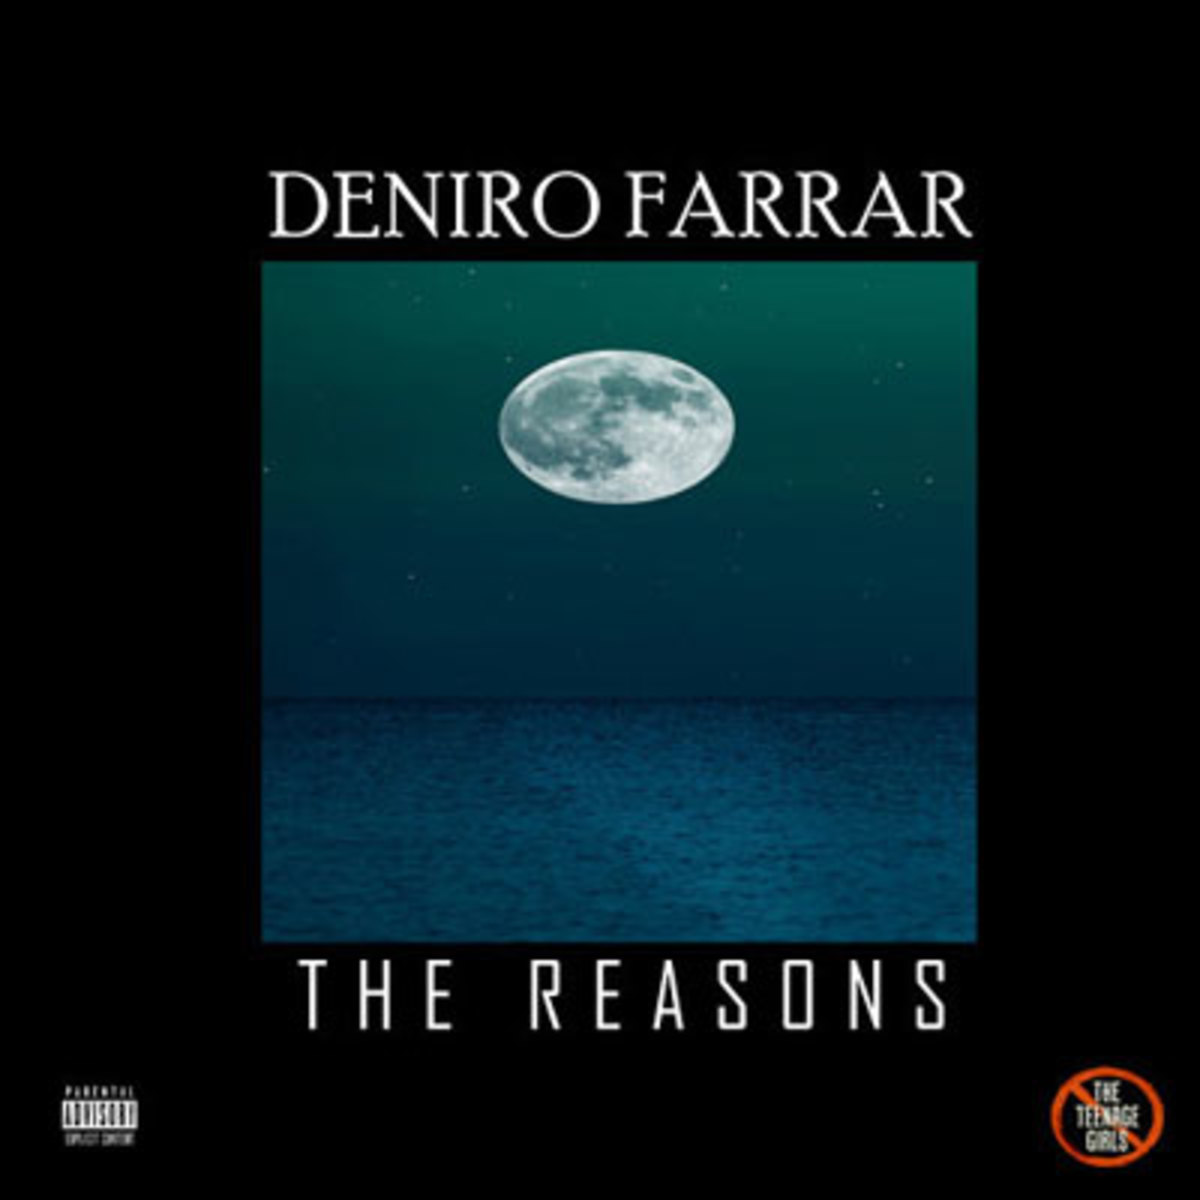 denirofarrar-thereasons.jpg